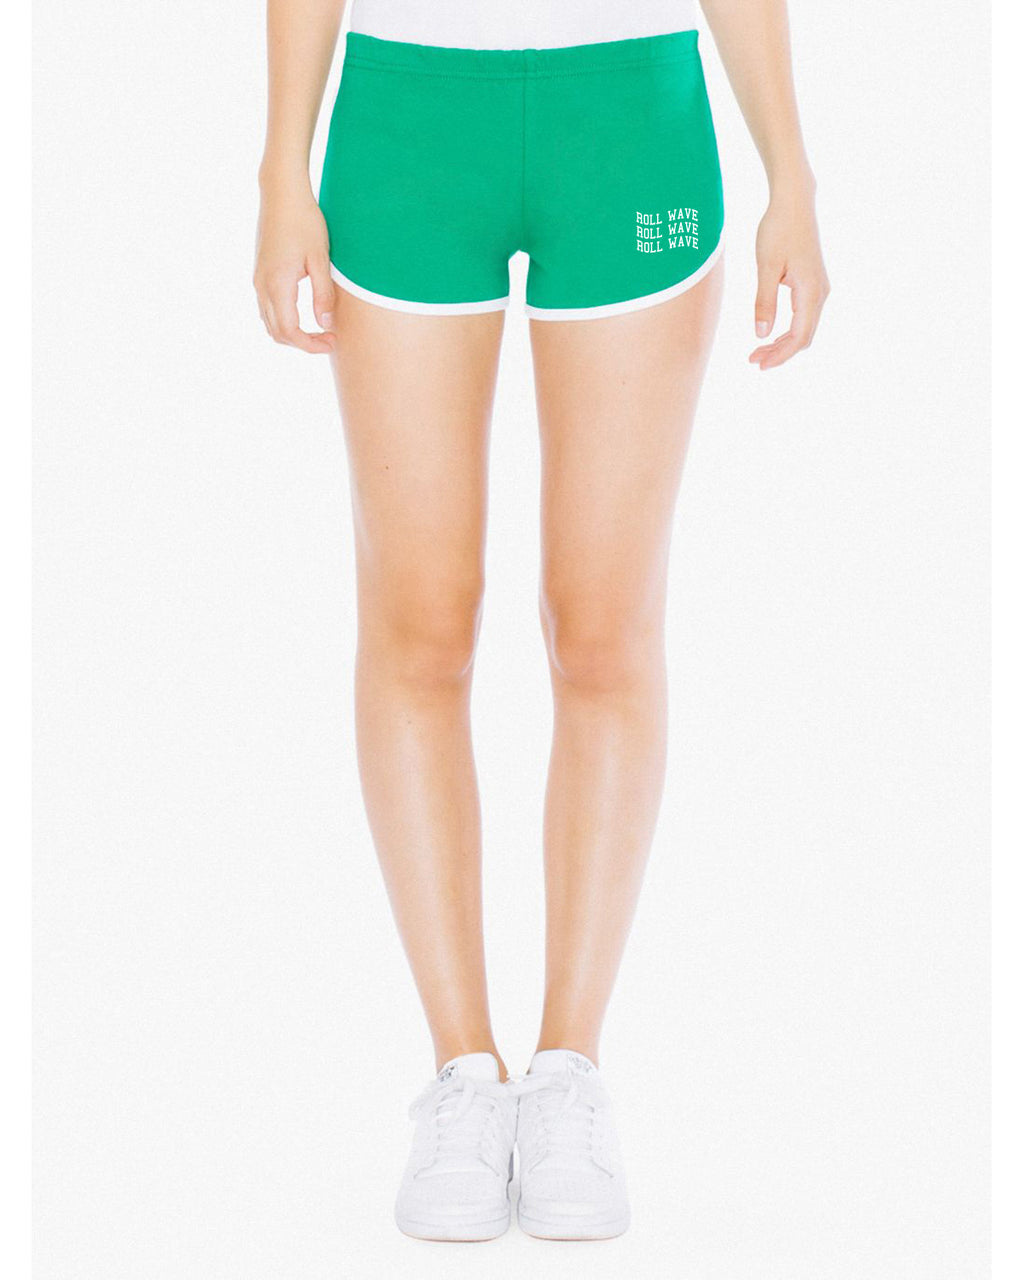 WAVY RETRO SHORTS - GREEN